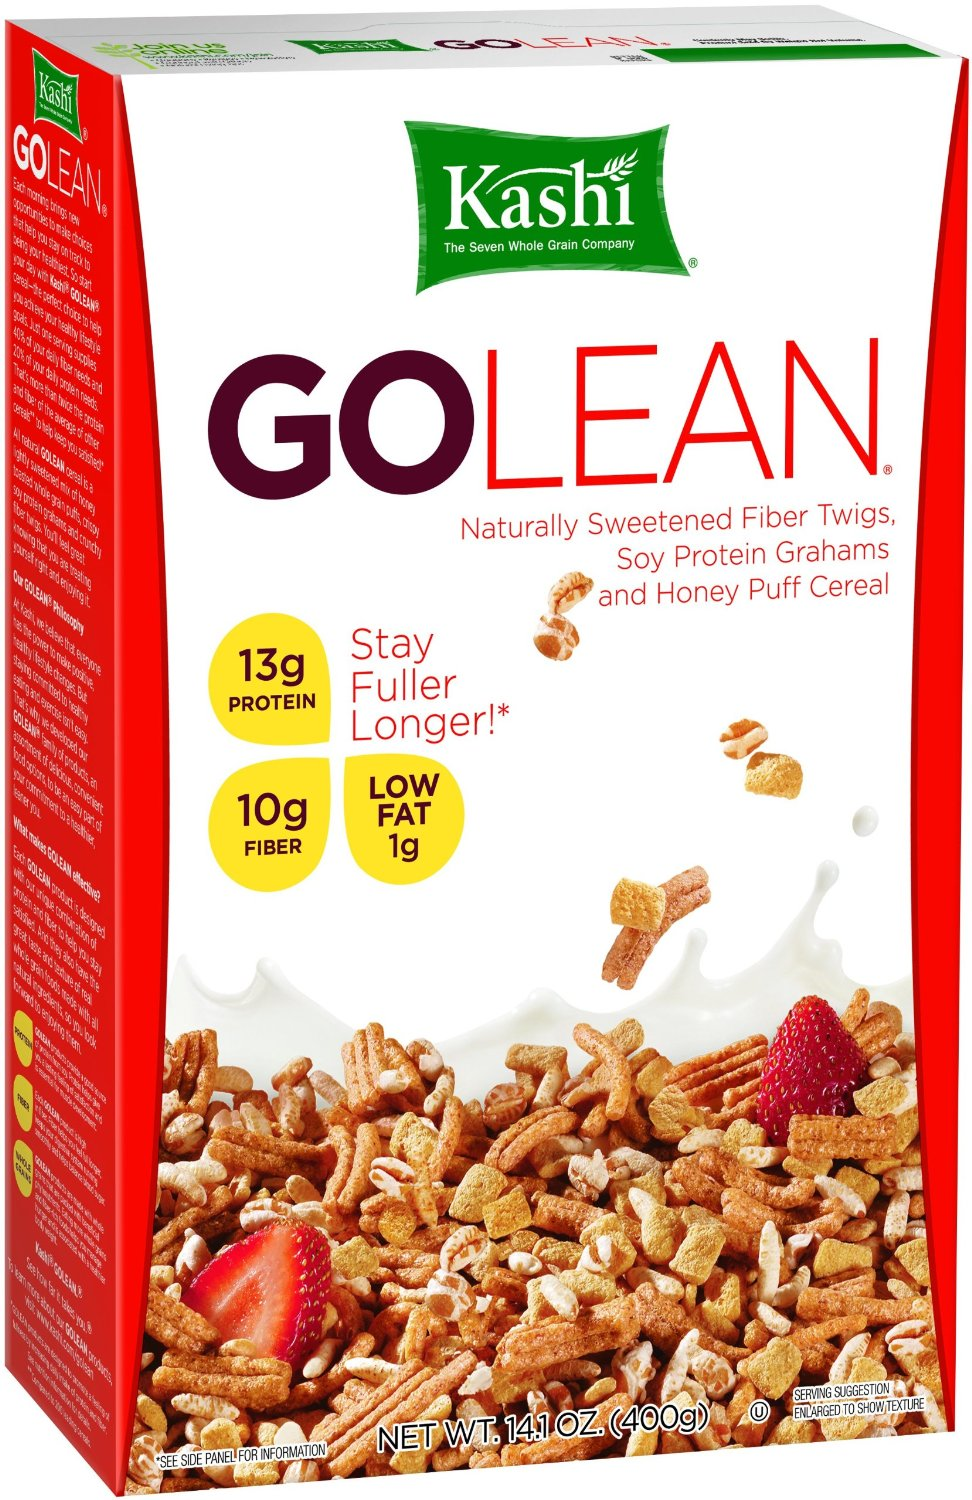 Is kashi go lean healthy